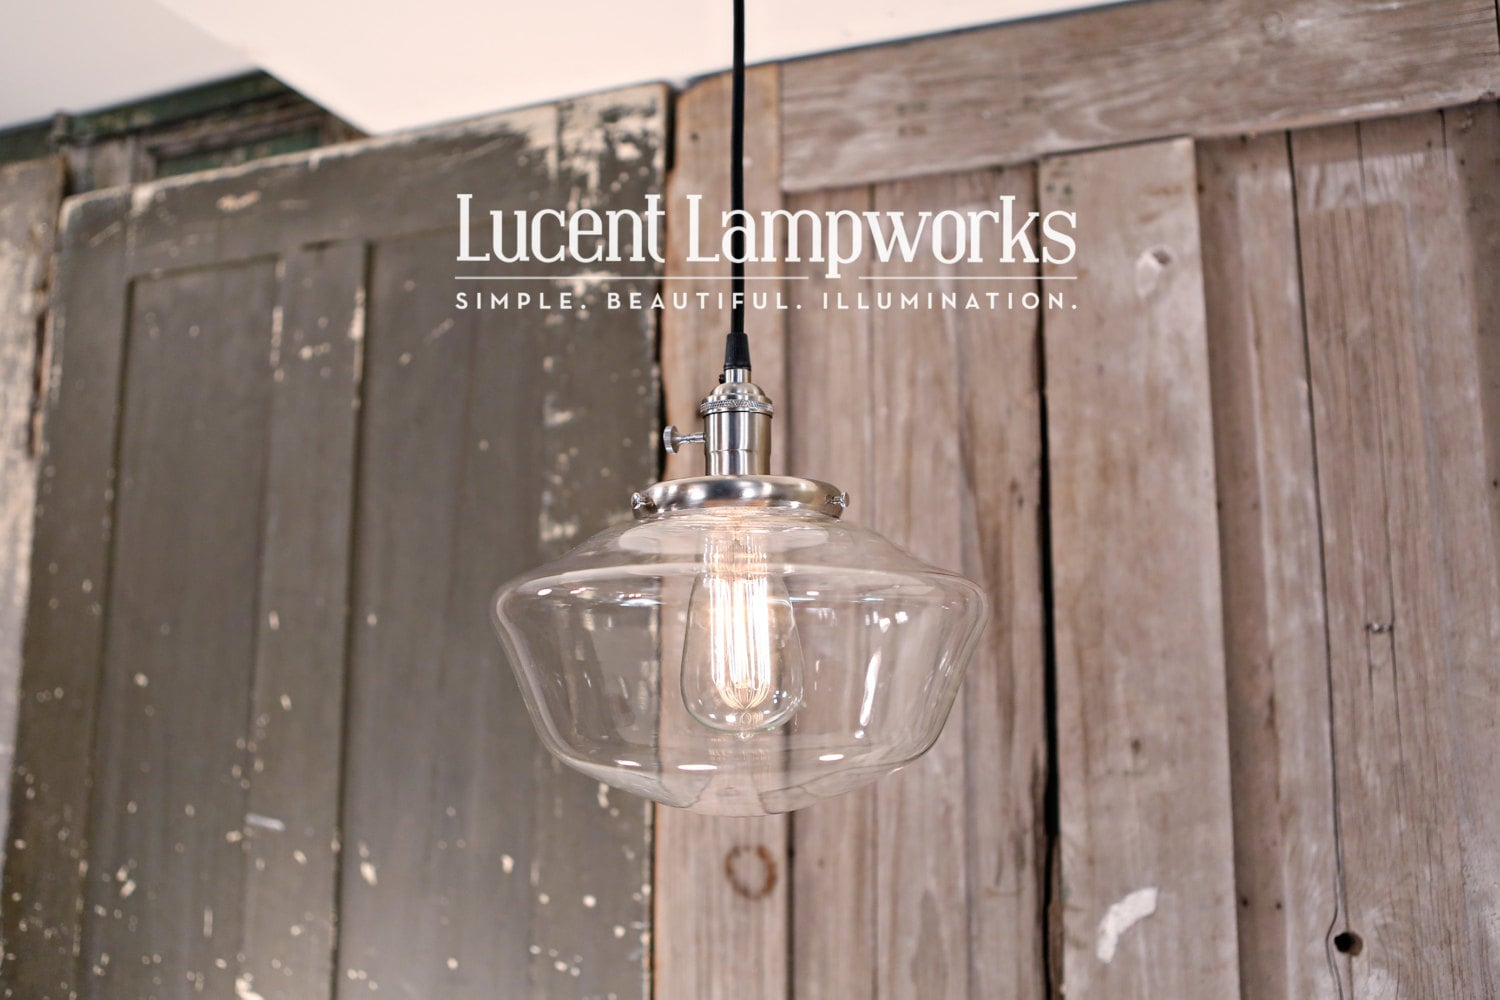 best fixtures pendant schoolhouse fixturespendant chandelier images factory lights on light schoolhouseelec lighting lightingschoolhouse pinterest